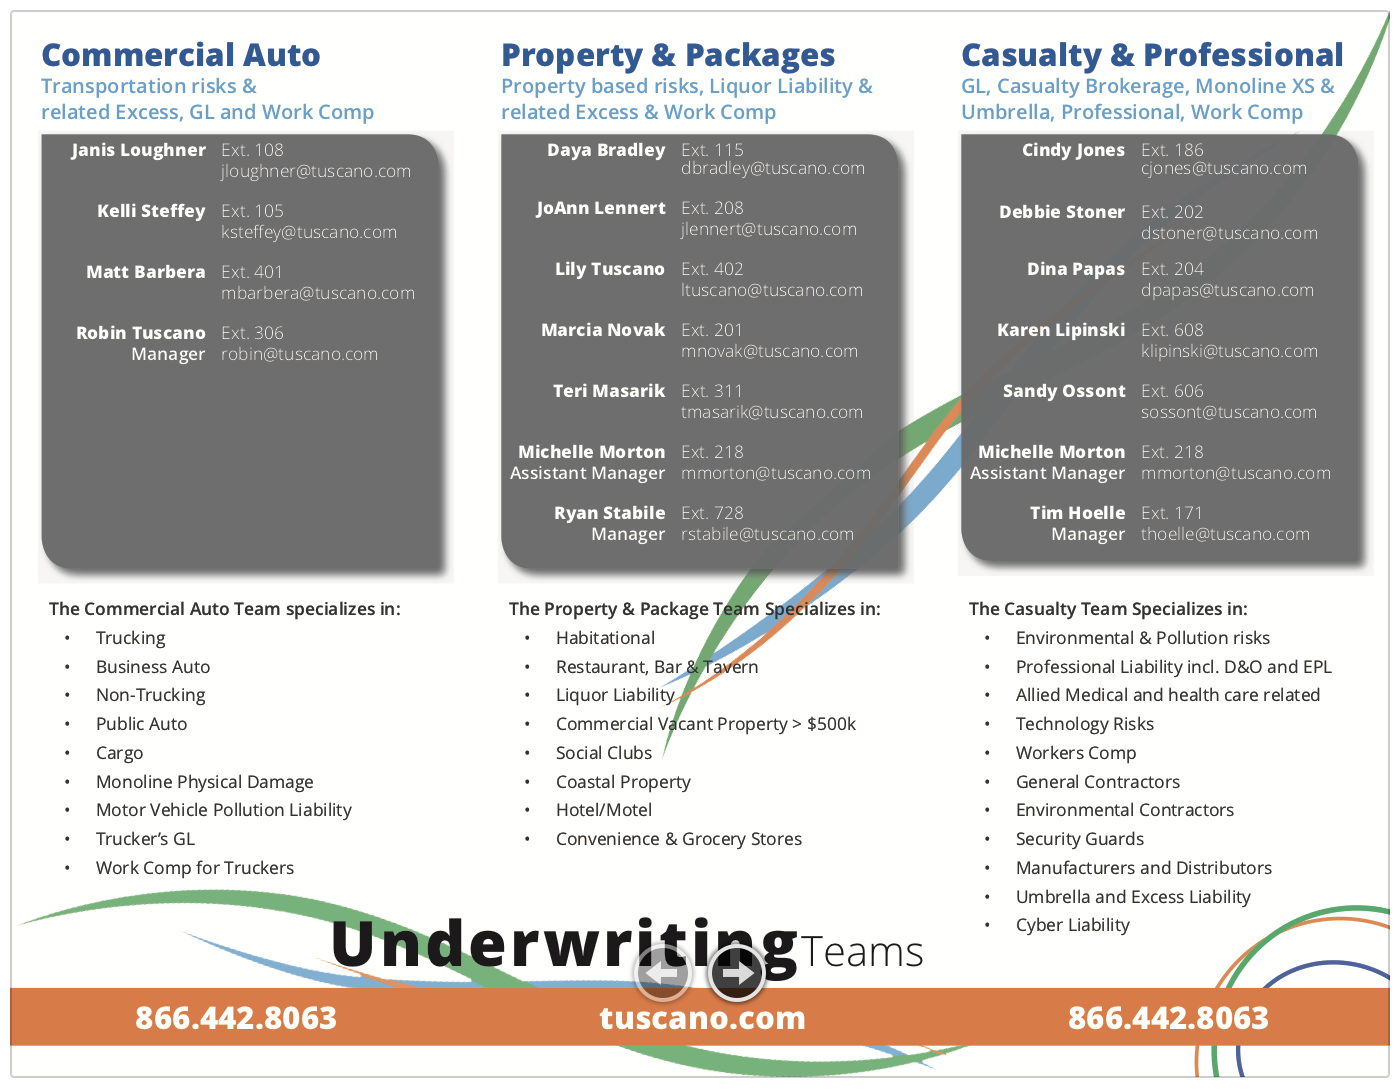 Underwriting Teams